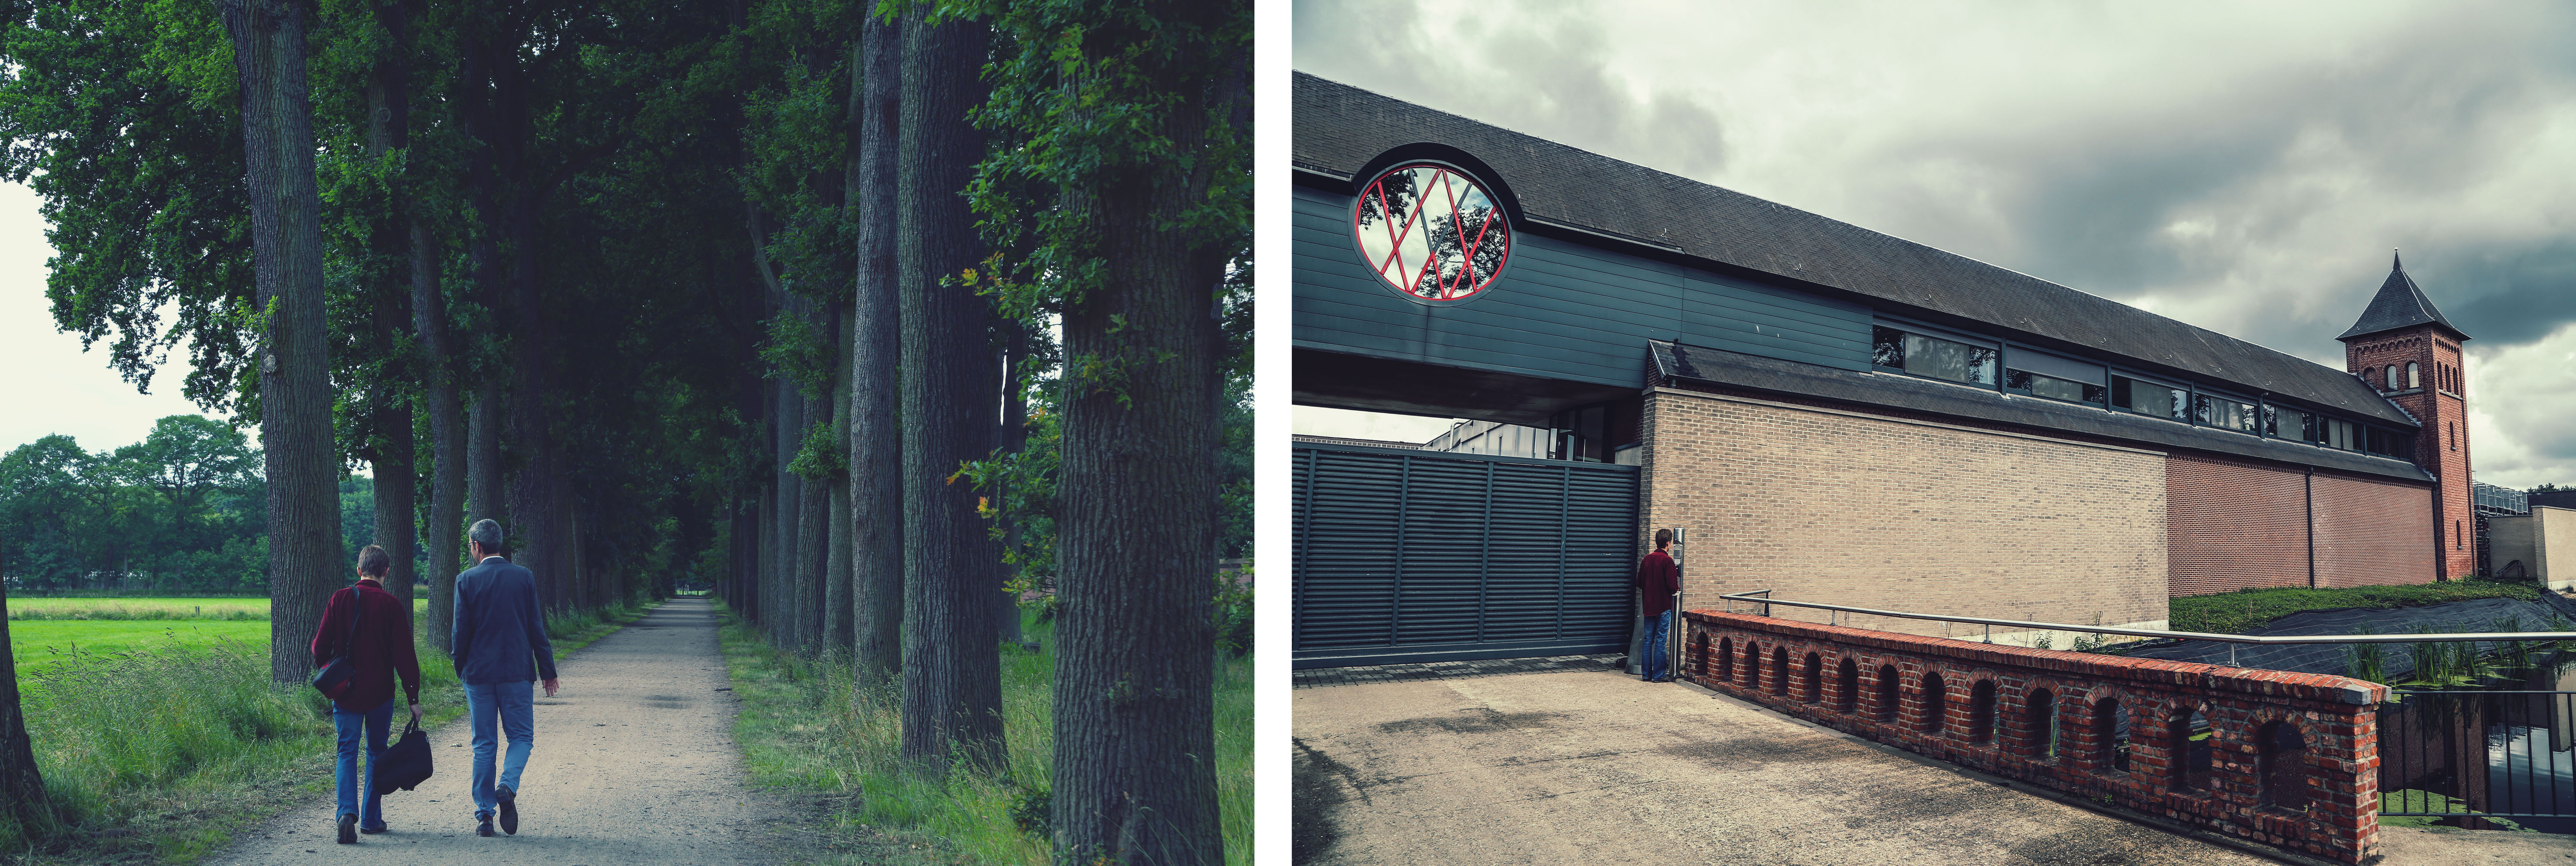 Westmalle-entrance-collage